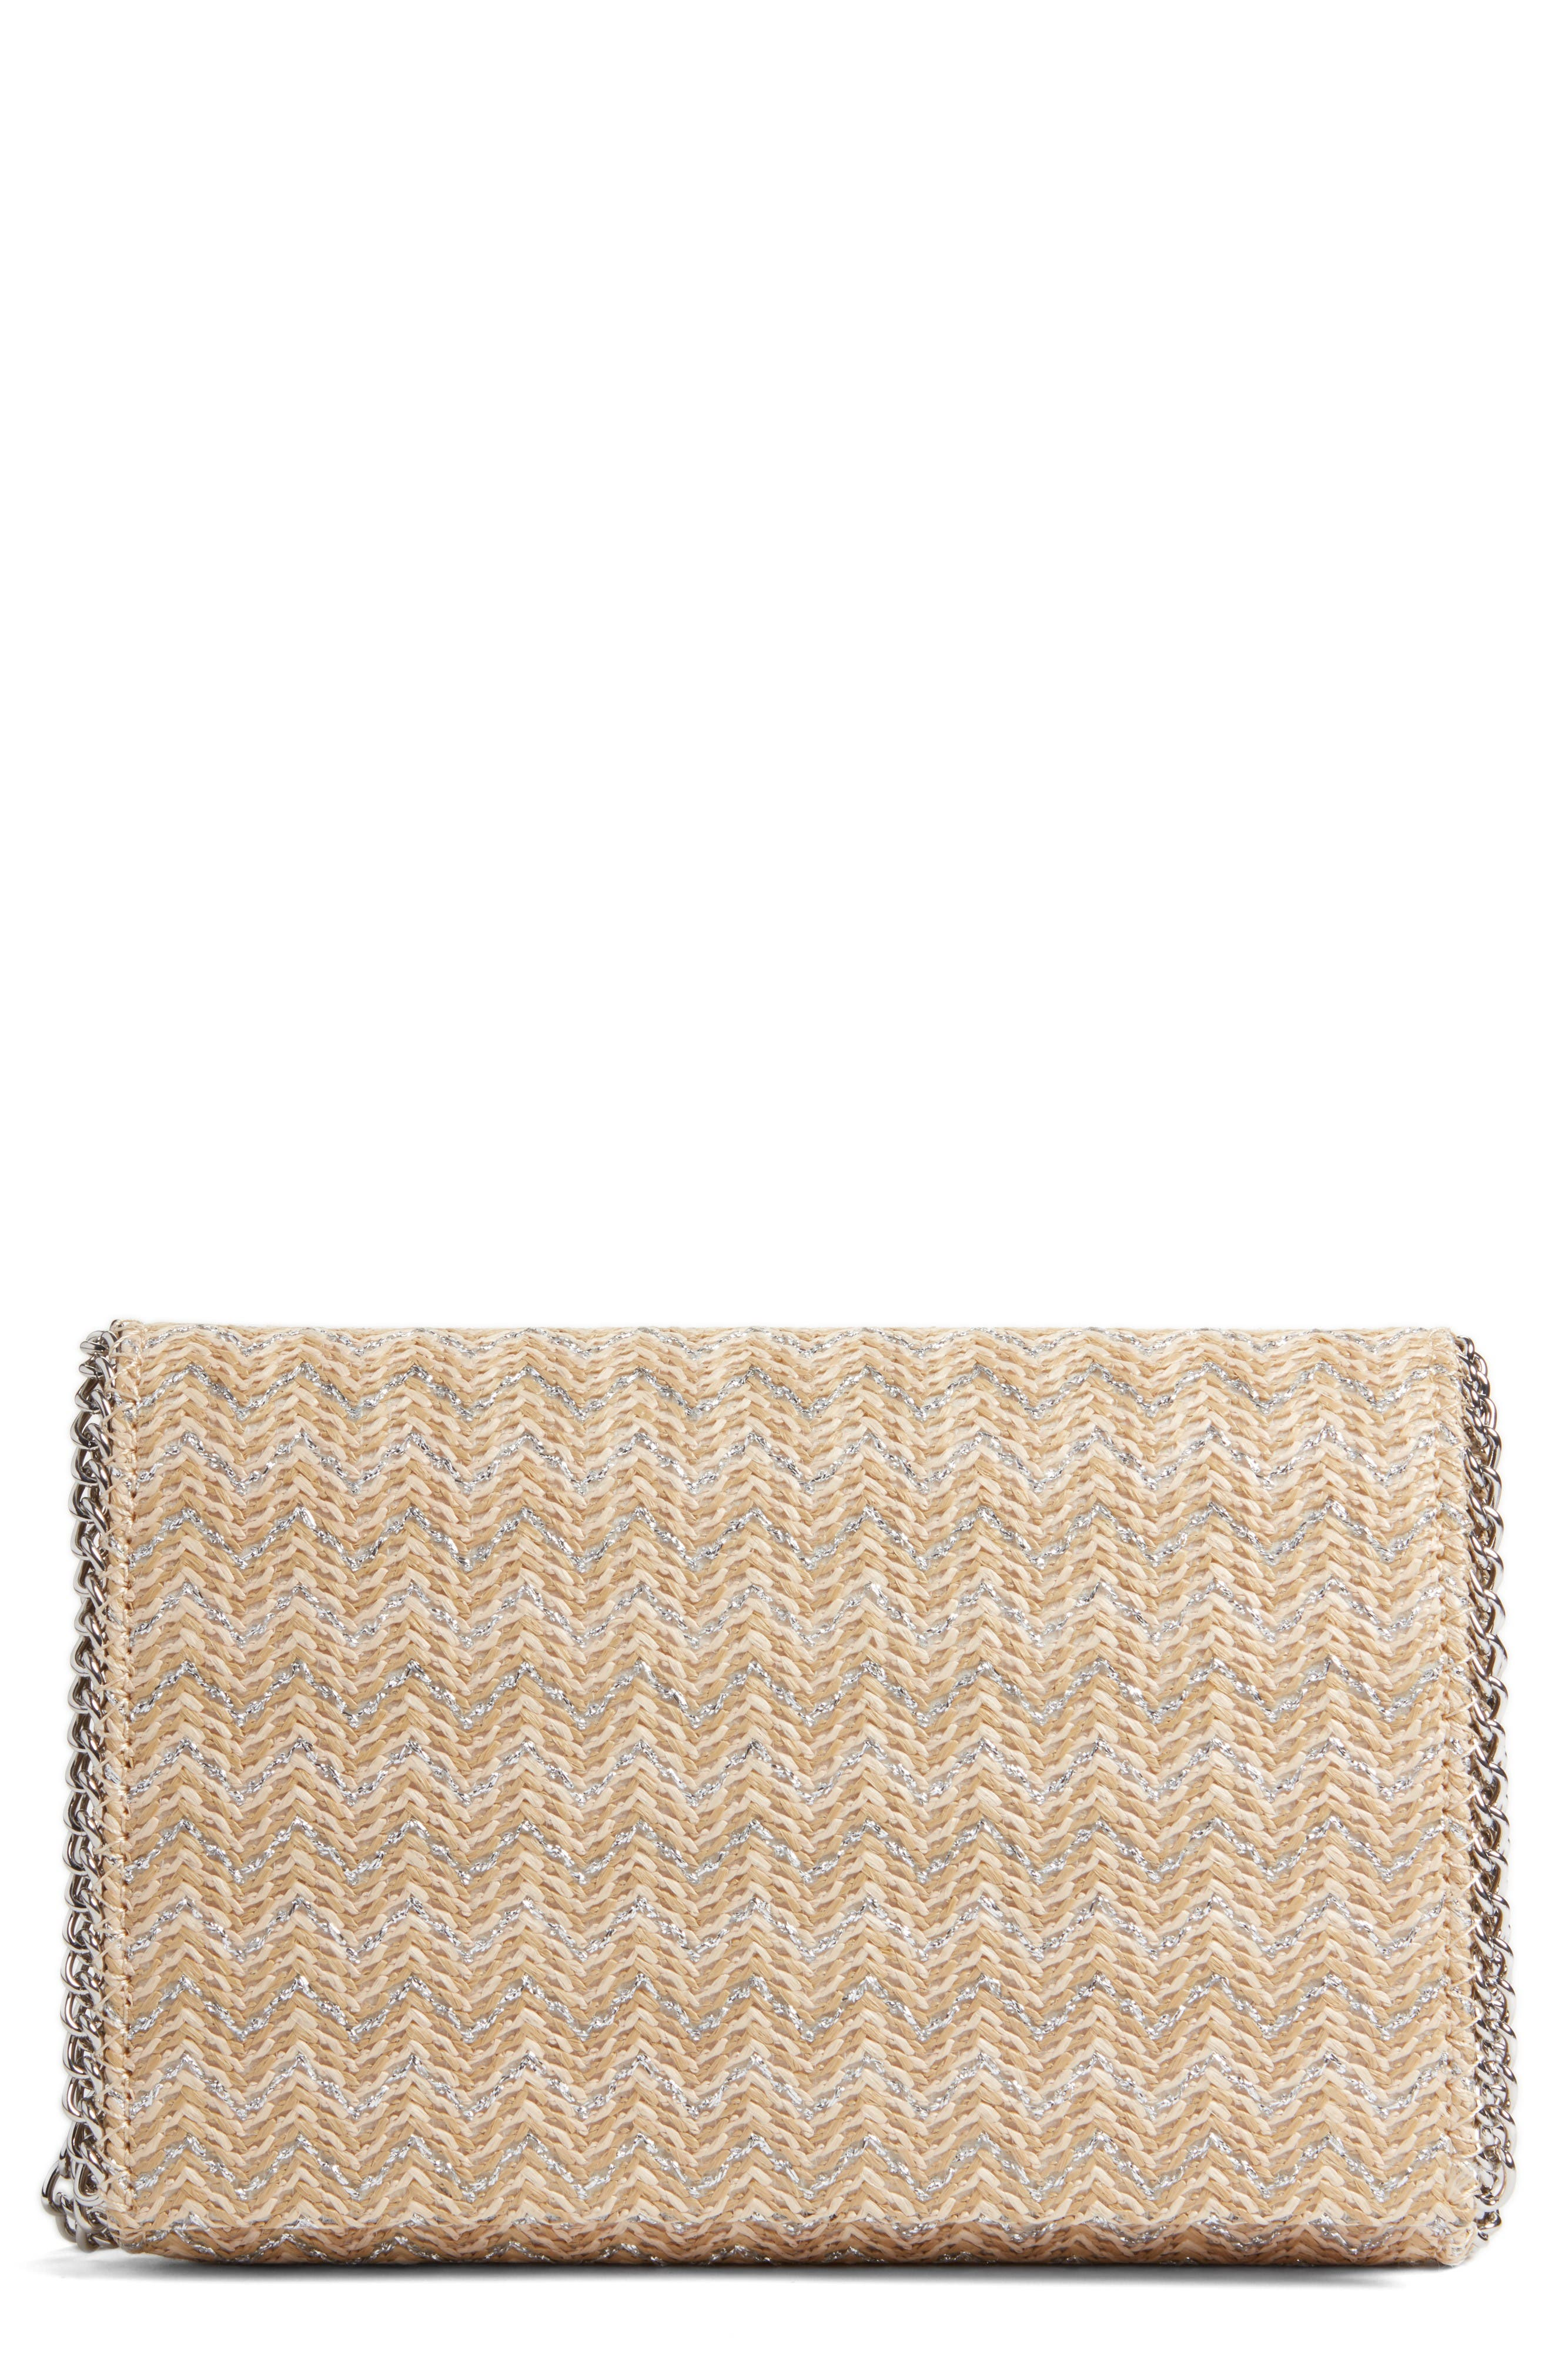 Chelsea28 Stripe Straw Convertible Clutch